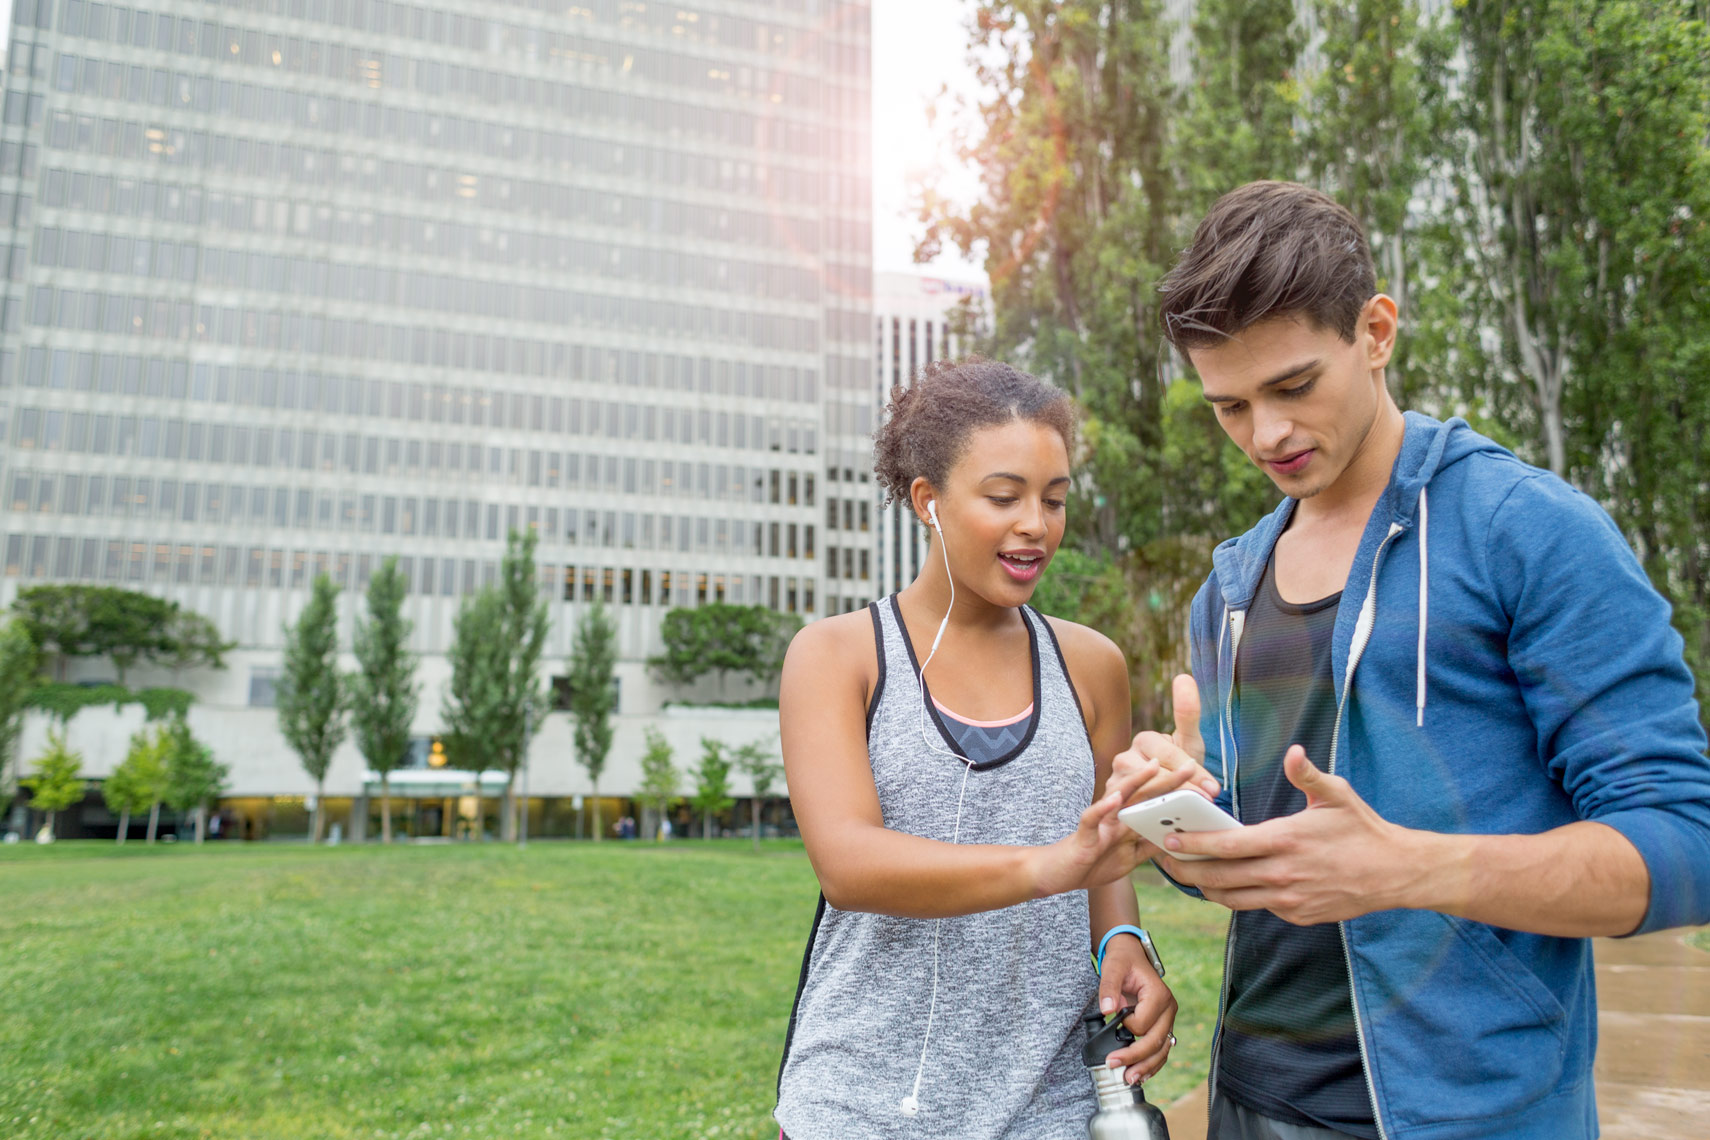 San Francisco Bay Area Advertising, Lifestyle, Commercial Photographer, college students on campus exercising and checking phones, smiling, a young couple running outdoor talking to each other, millennials